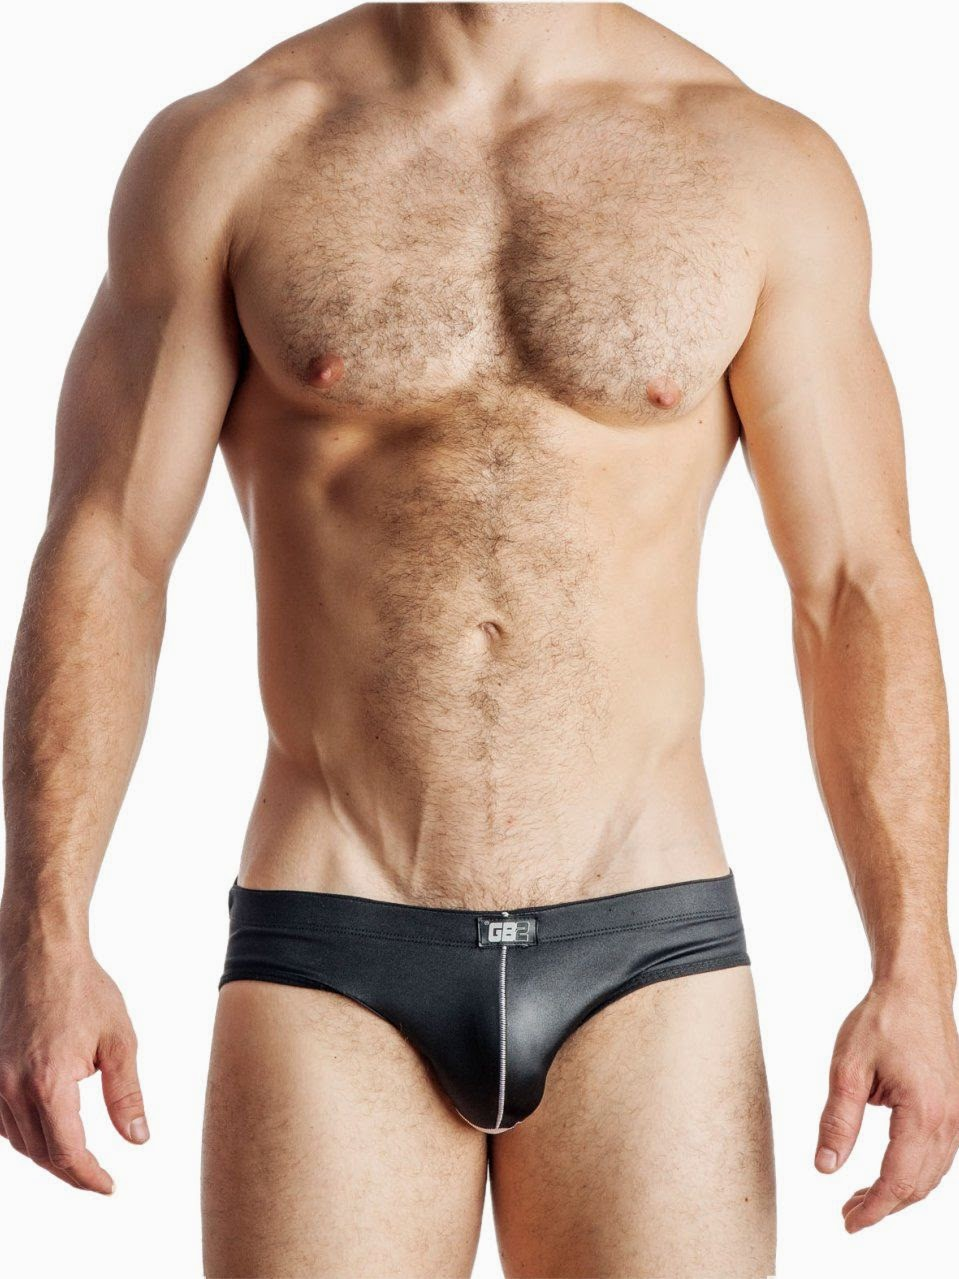 GBGB Wear Hugo Jock Brief Underwear Cool4Guys